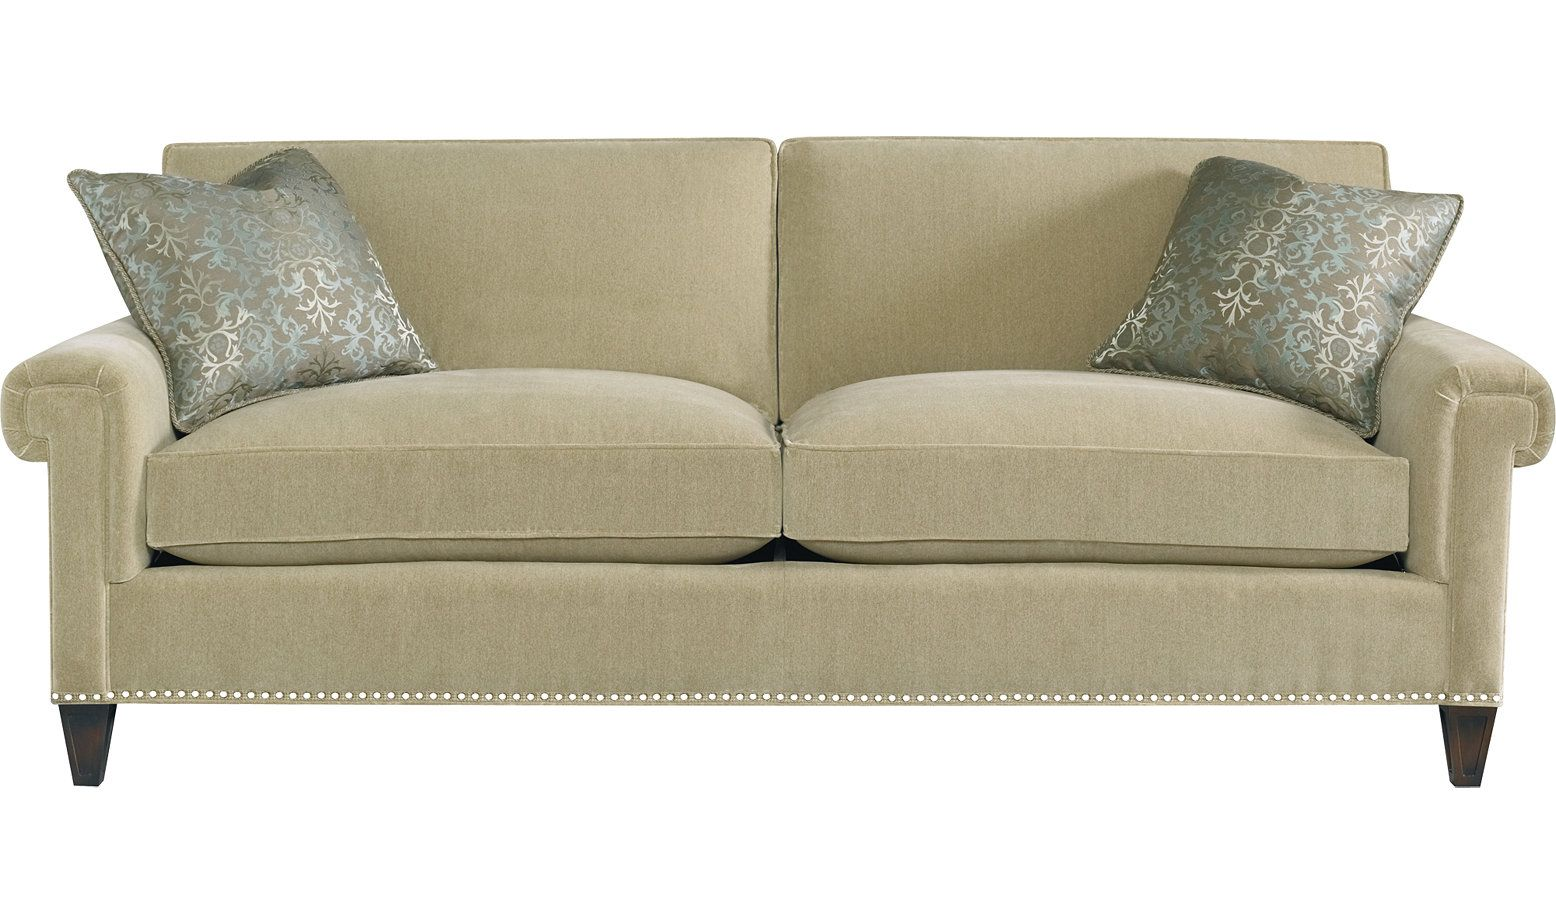 Huxley Sofa By Baker Clics Upholstery 6605s Furniture